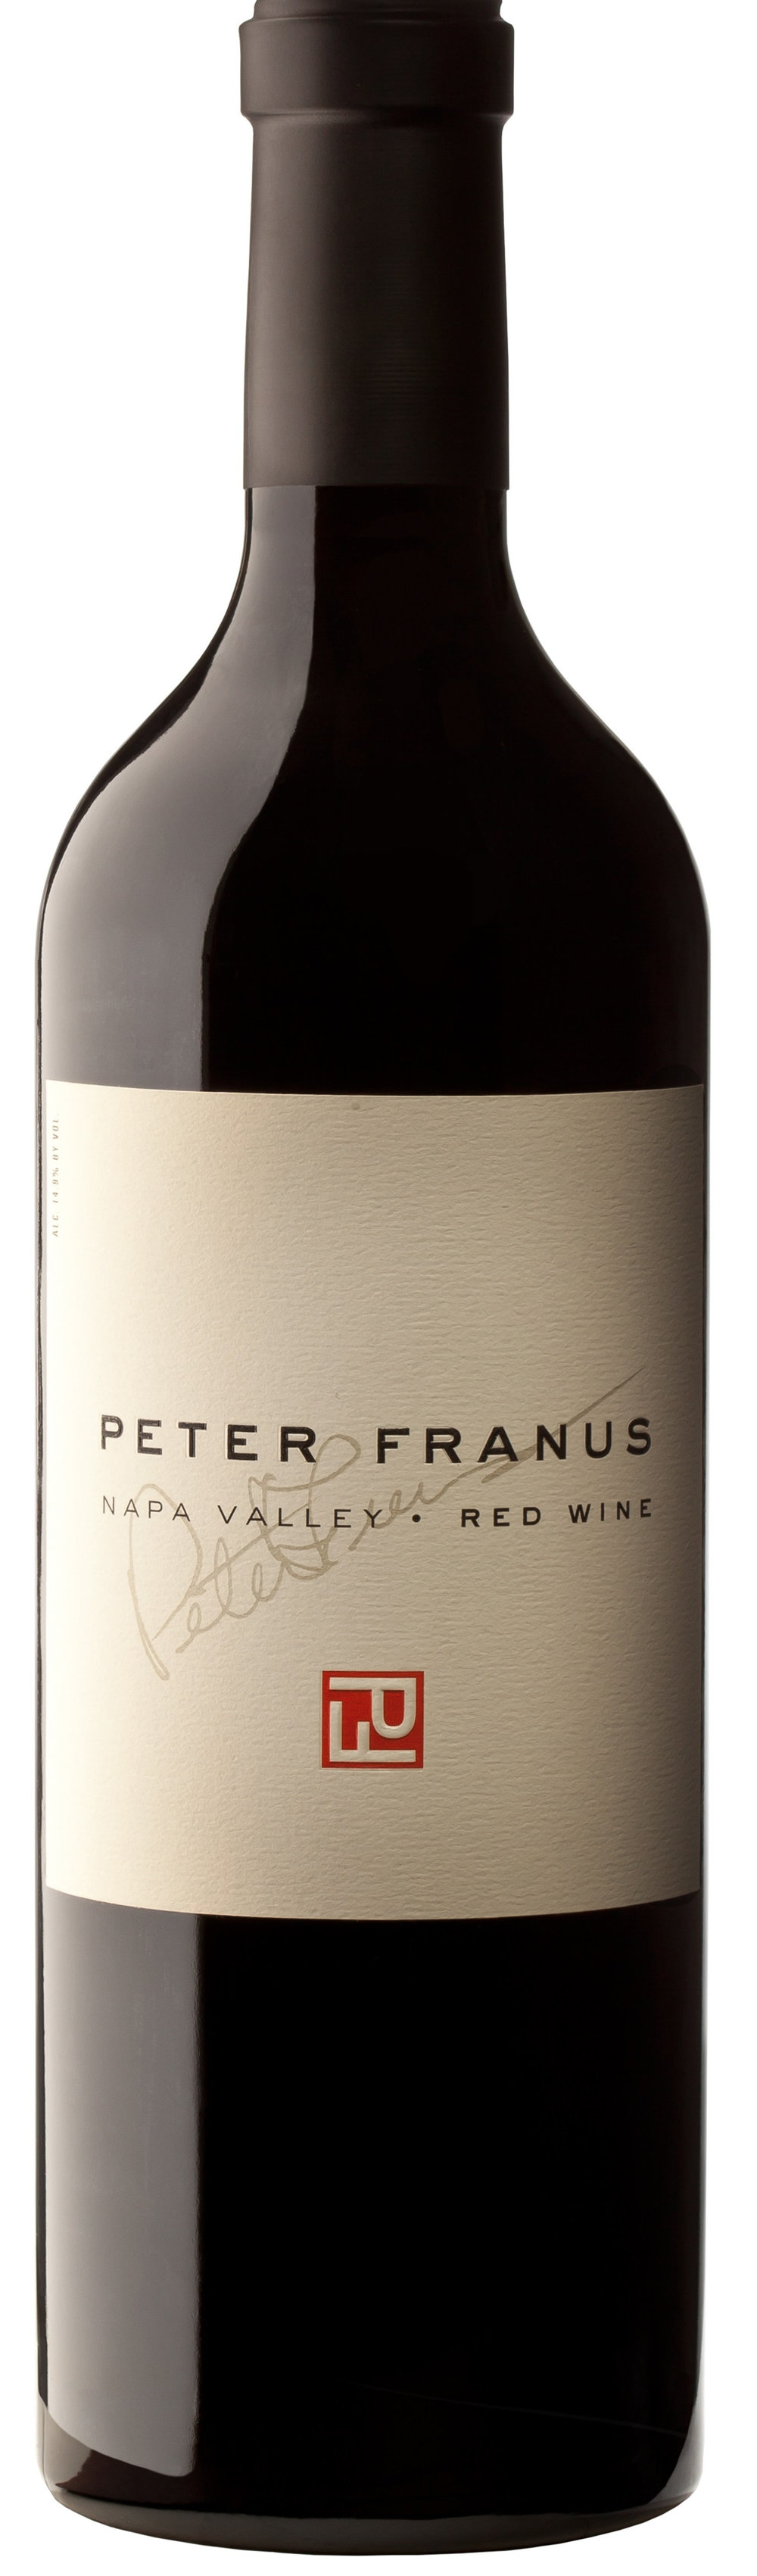 Peter Franus – Napa Valley Red